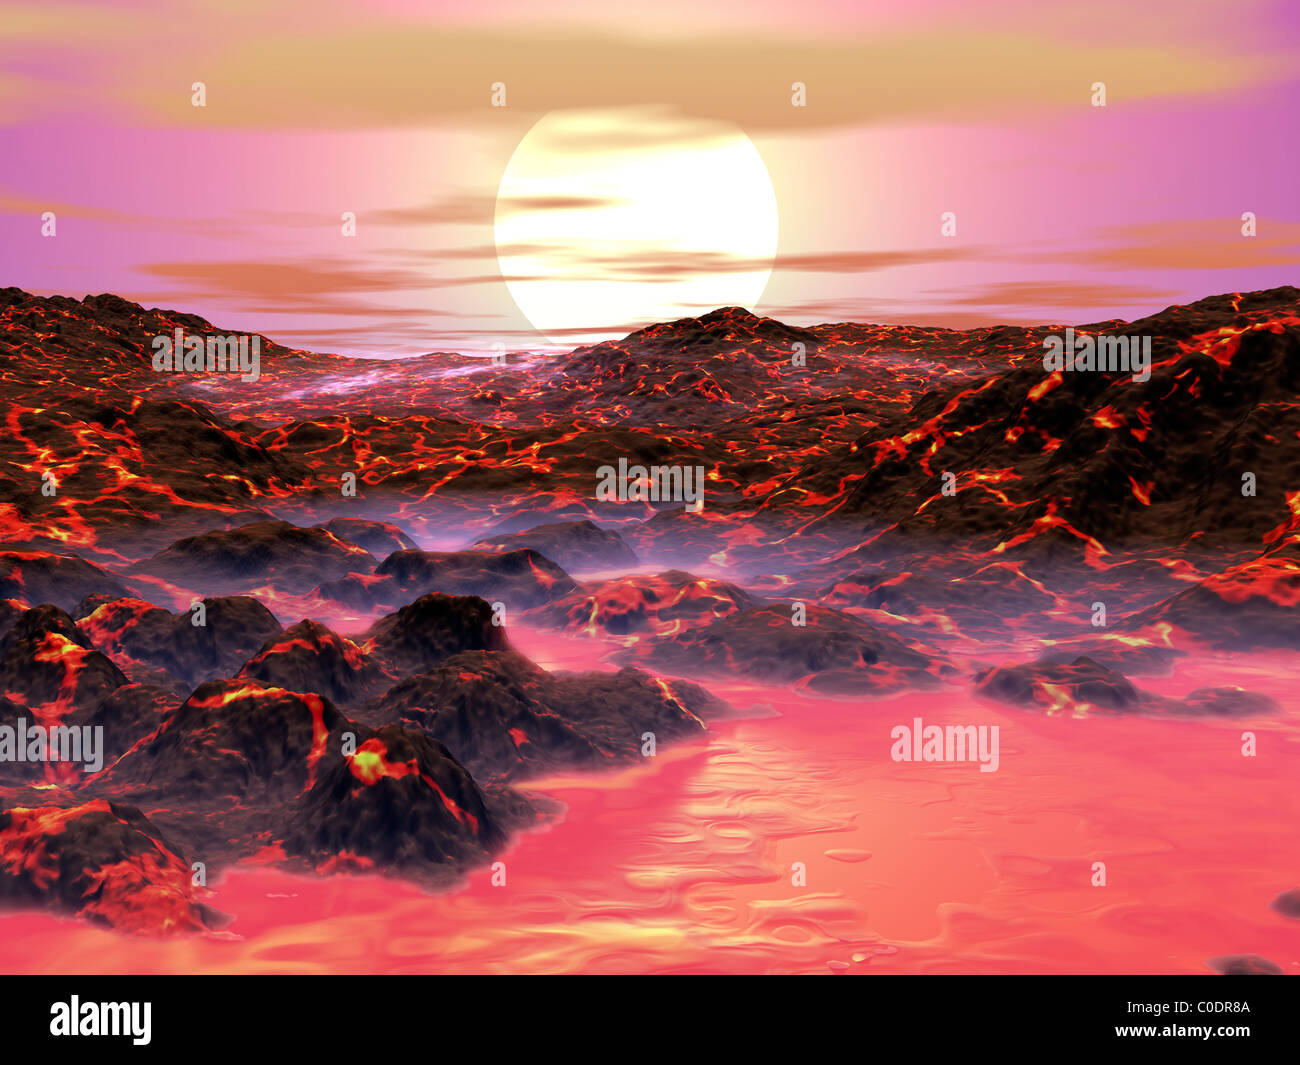 The Sun begins its journey toward becoming a red giant. - Stock Image